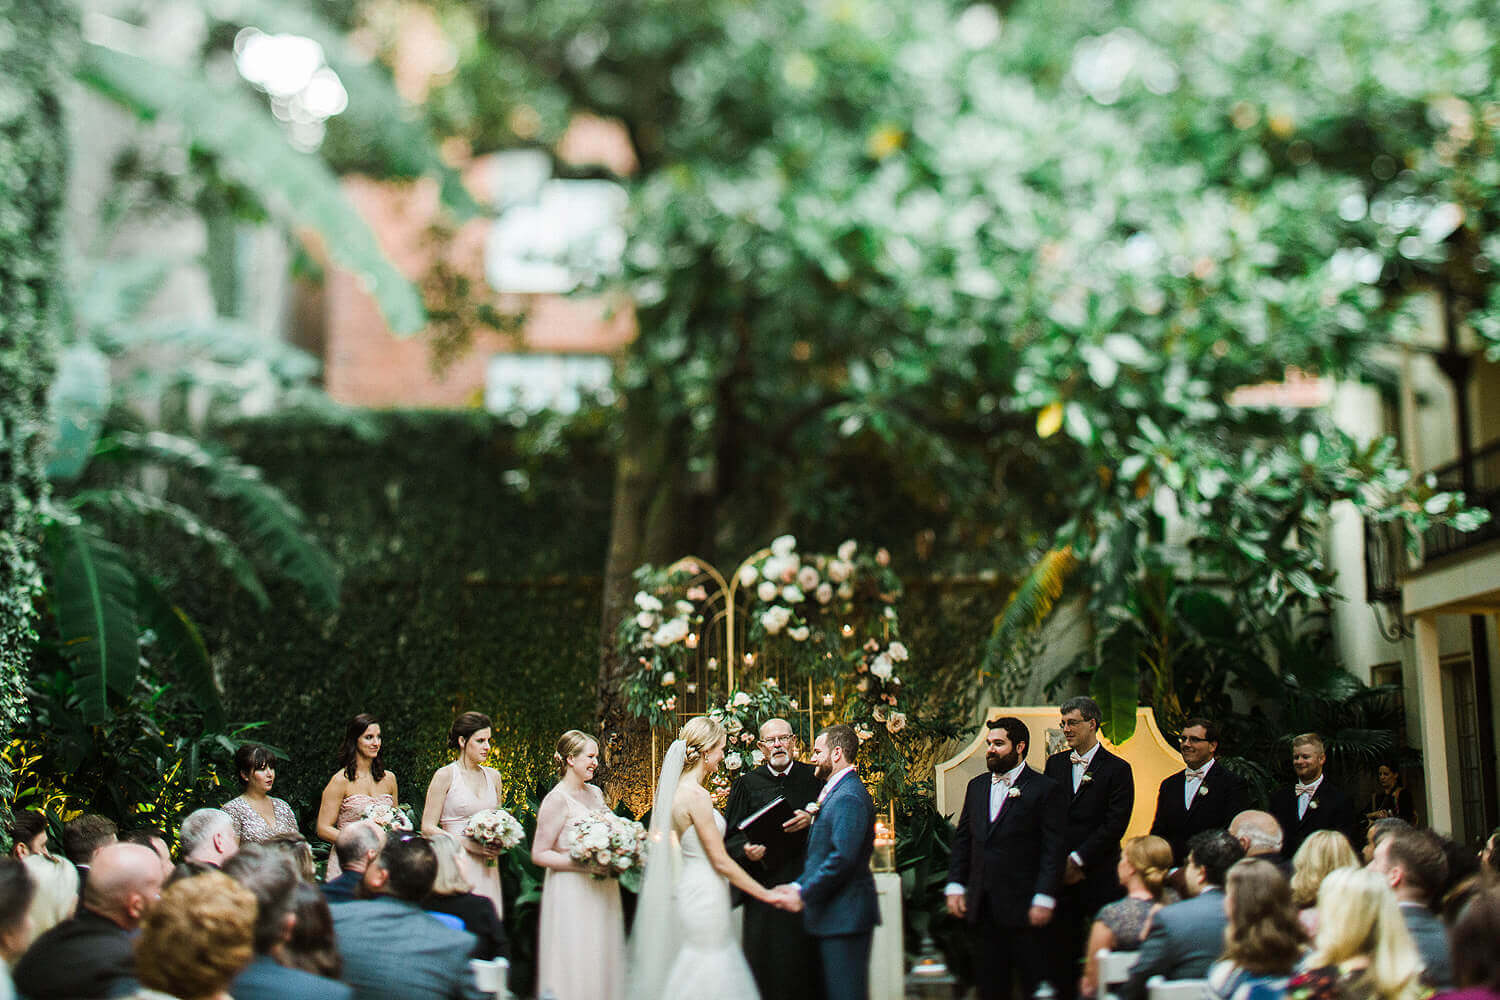 Wedding Photography In New Orleans: Maile Lani • Fine Art New Orleans Wedding & Elopement